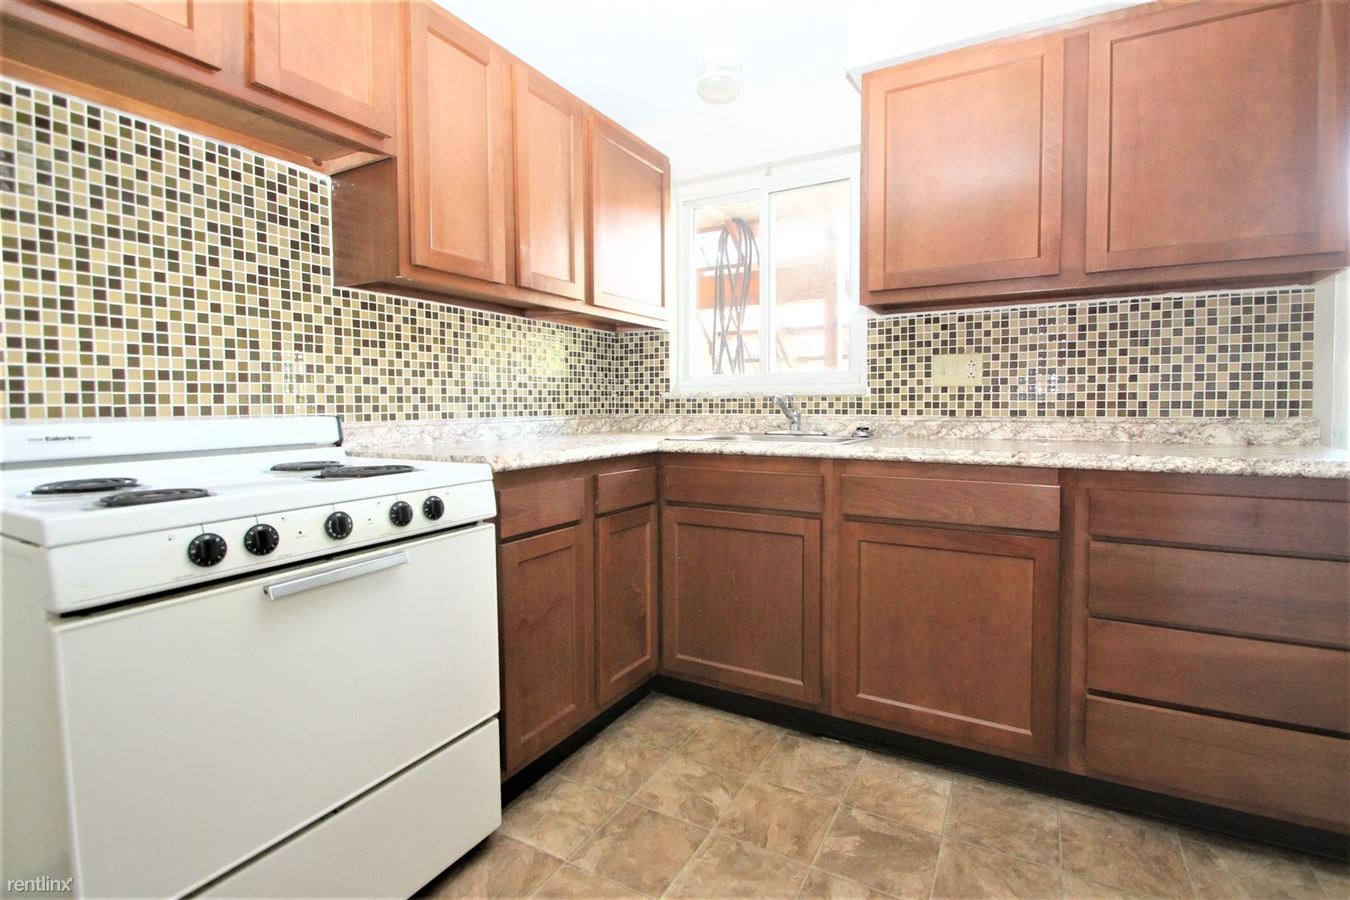 2 Bedrooms 1 Bathroom Apartment for rent at 199 Rosemont Dr in Moon Township, PA